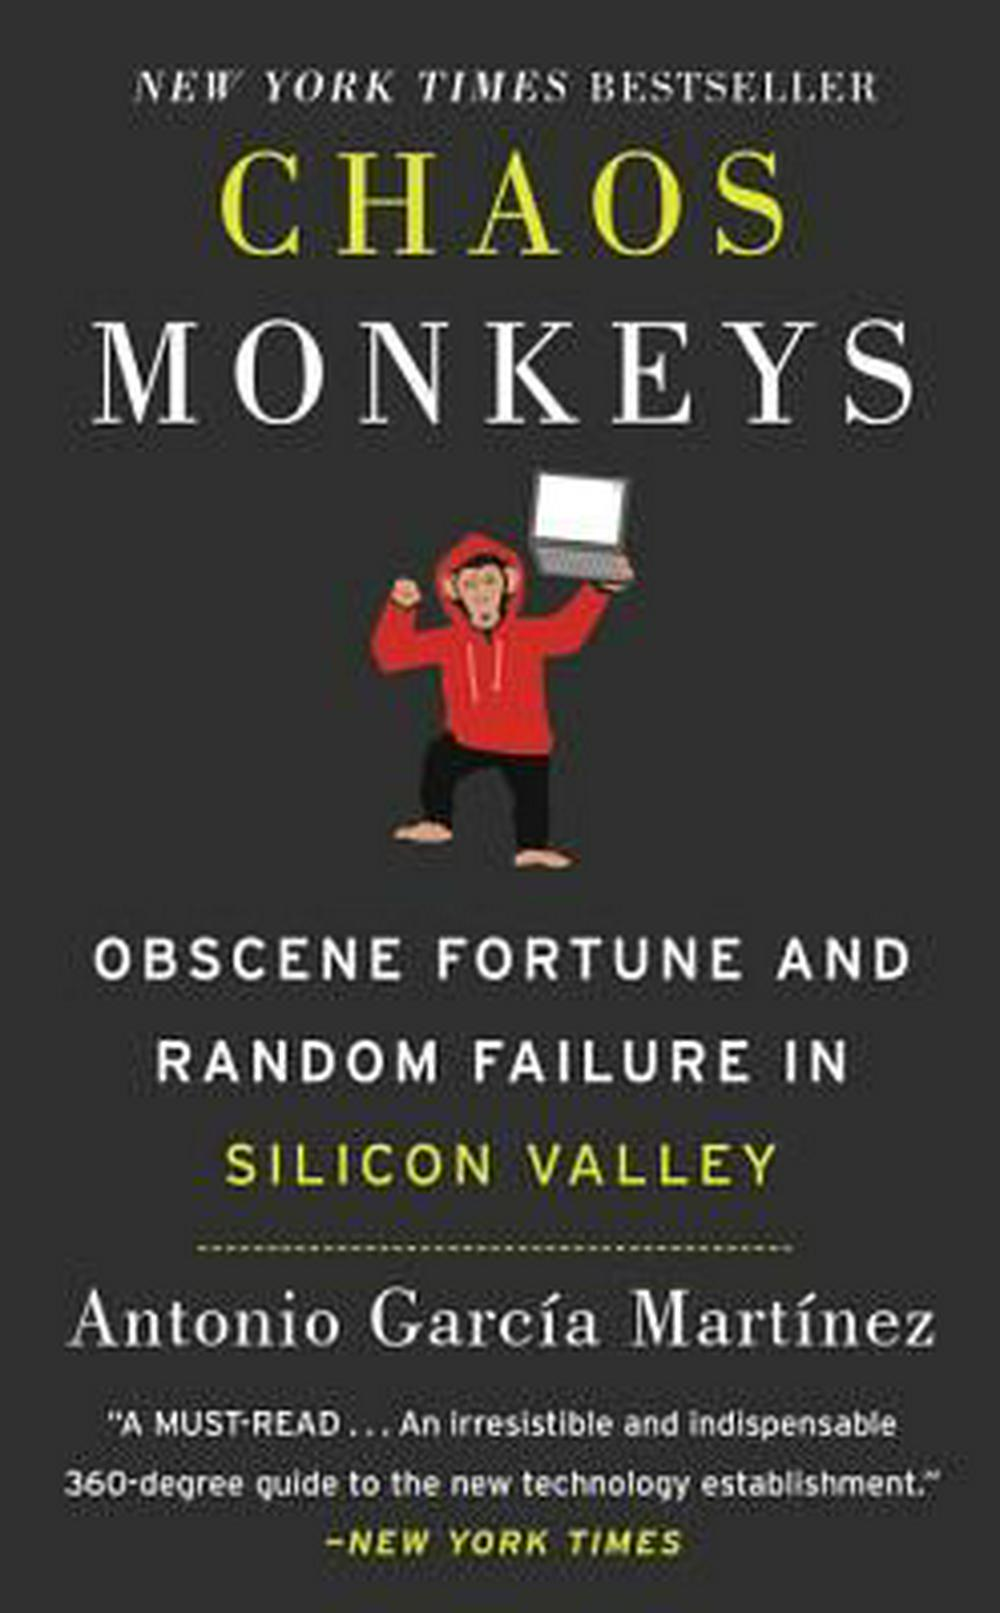 Chaos Monkeys: Obscene Fortune and Random Failure in Silicon Valley by Antonio Garcia Martinez, ISBN: 9780062669797